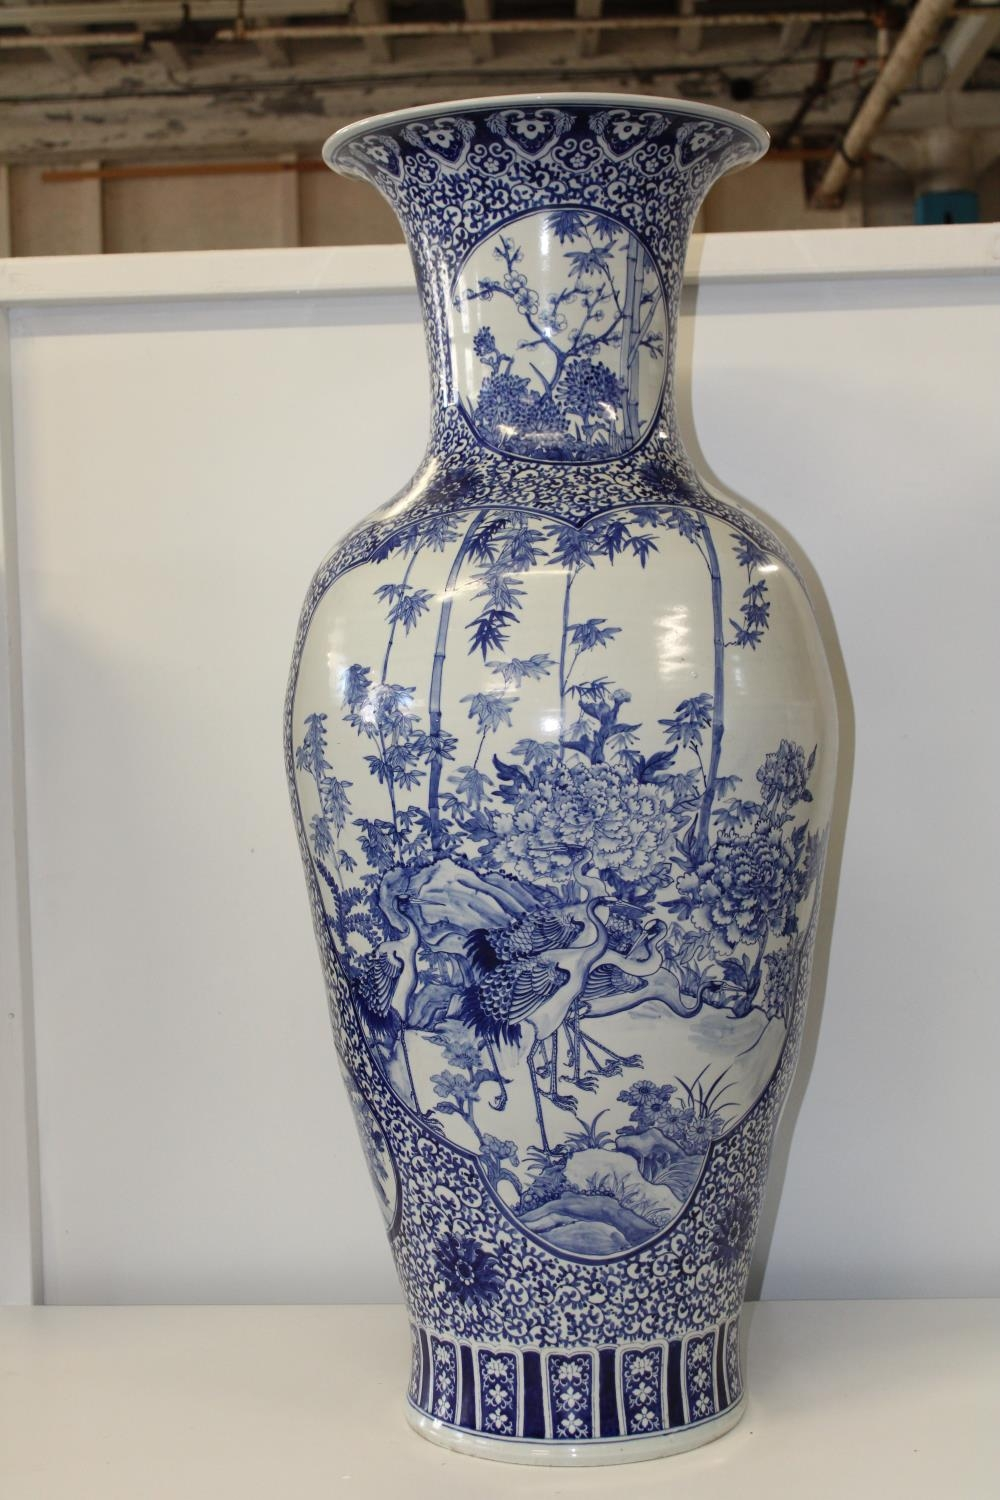 A very large & heavy floor standing blue & white Chinese vase Height 1.10 Meters x 43cm at widest